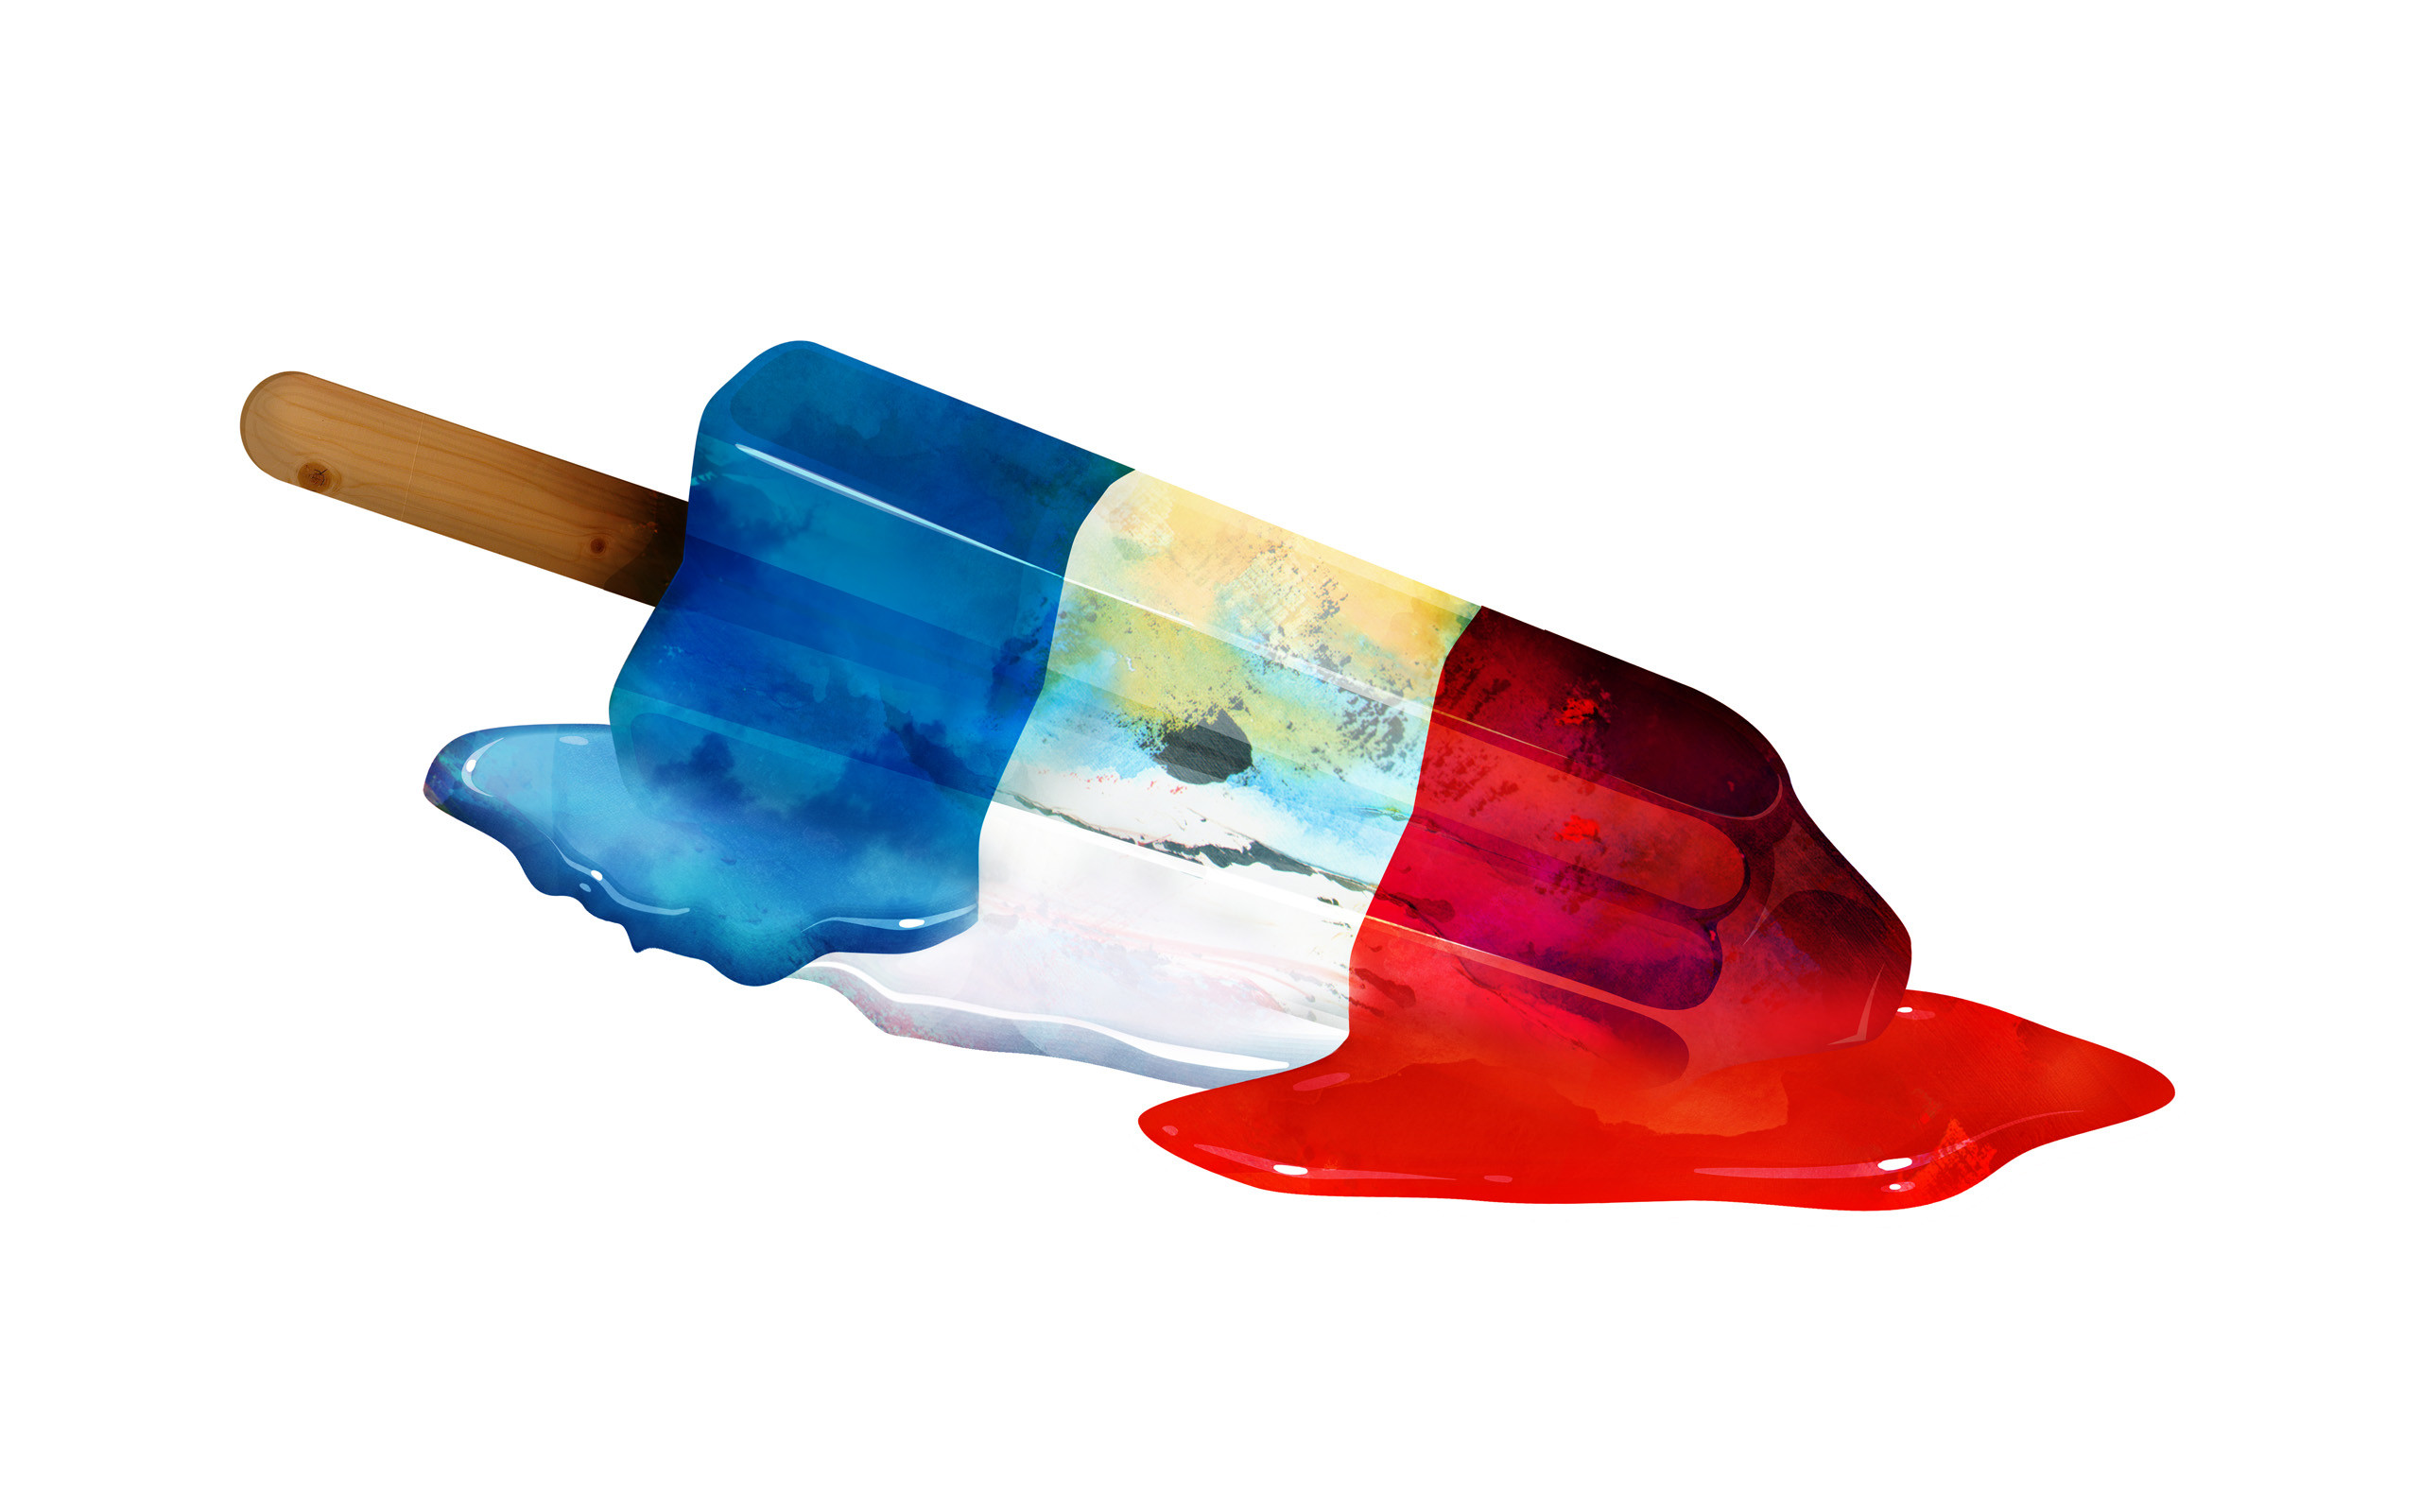 Popsicle vector art color red white blue summer melt stick liquid food  sweets wallpaper | | 40330 | WallpaperUP